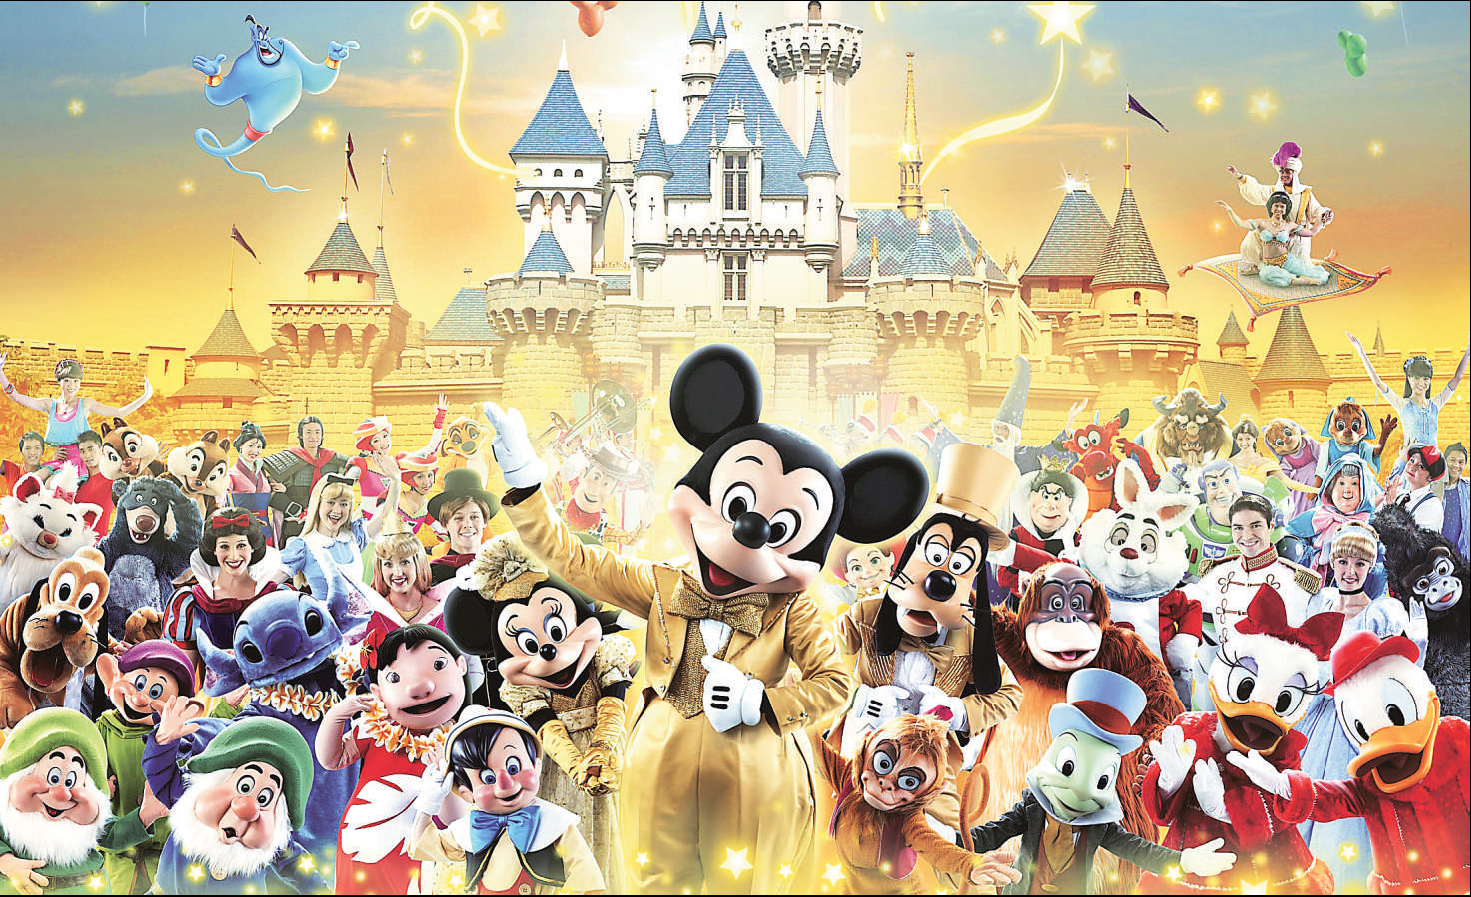 All Disney Characters Wallpaper 1471x897